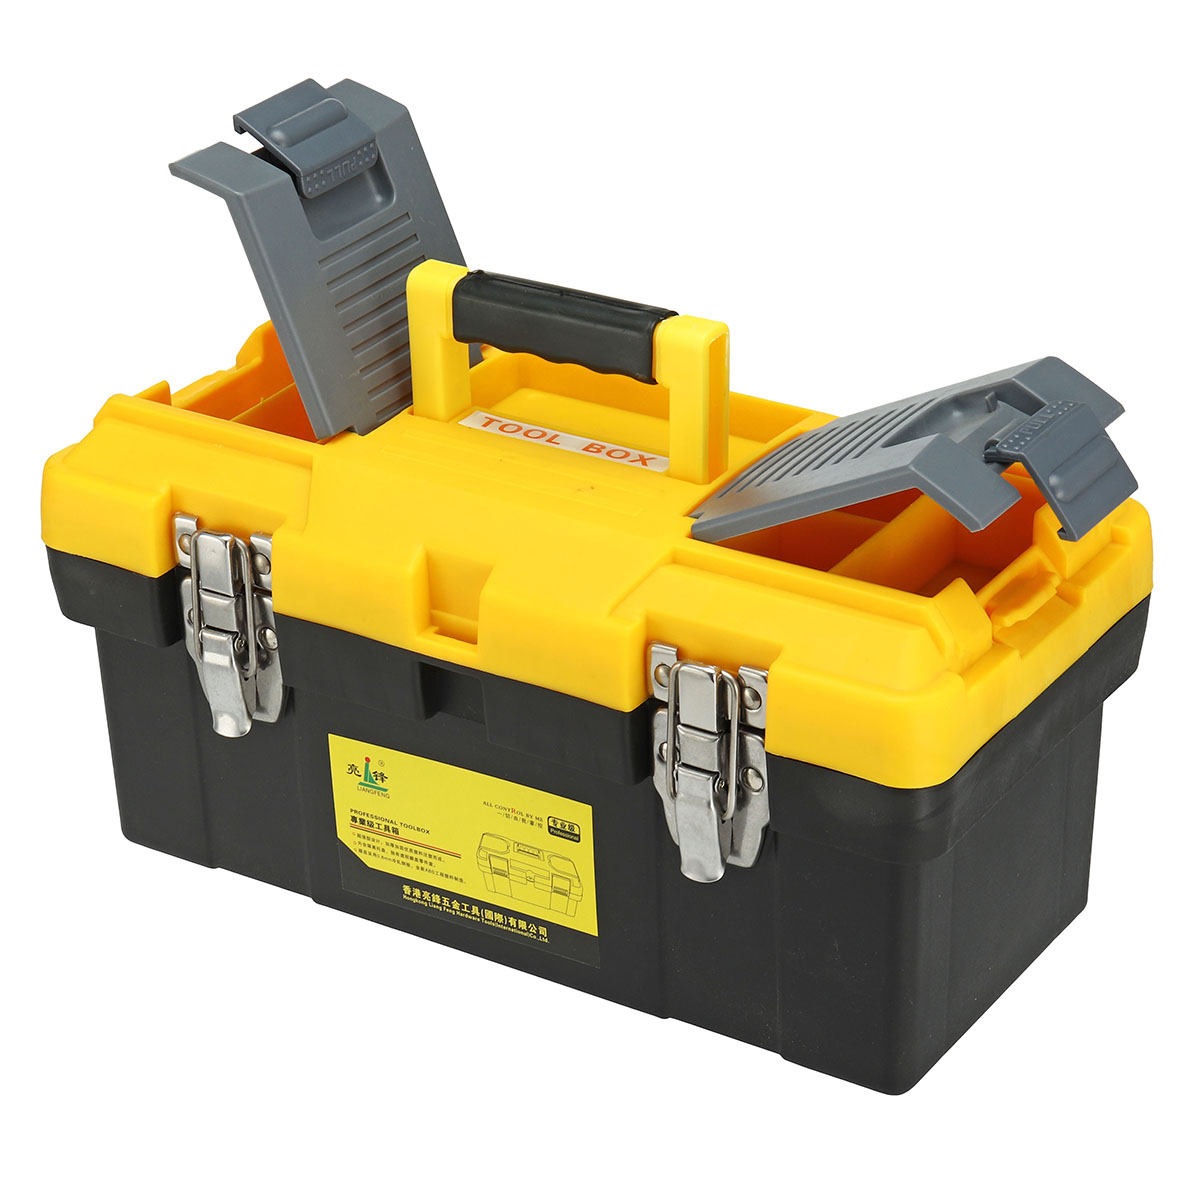 14/17/19 Inch Plastic Tools Box Chest Storage Organizer PortableToolbox Tool Case Holder Container Handle Tray Compartment Kits